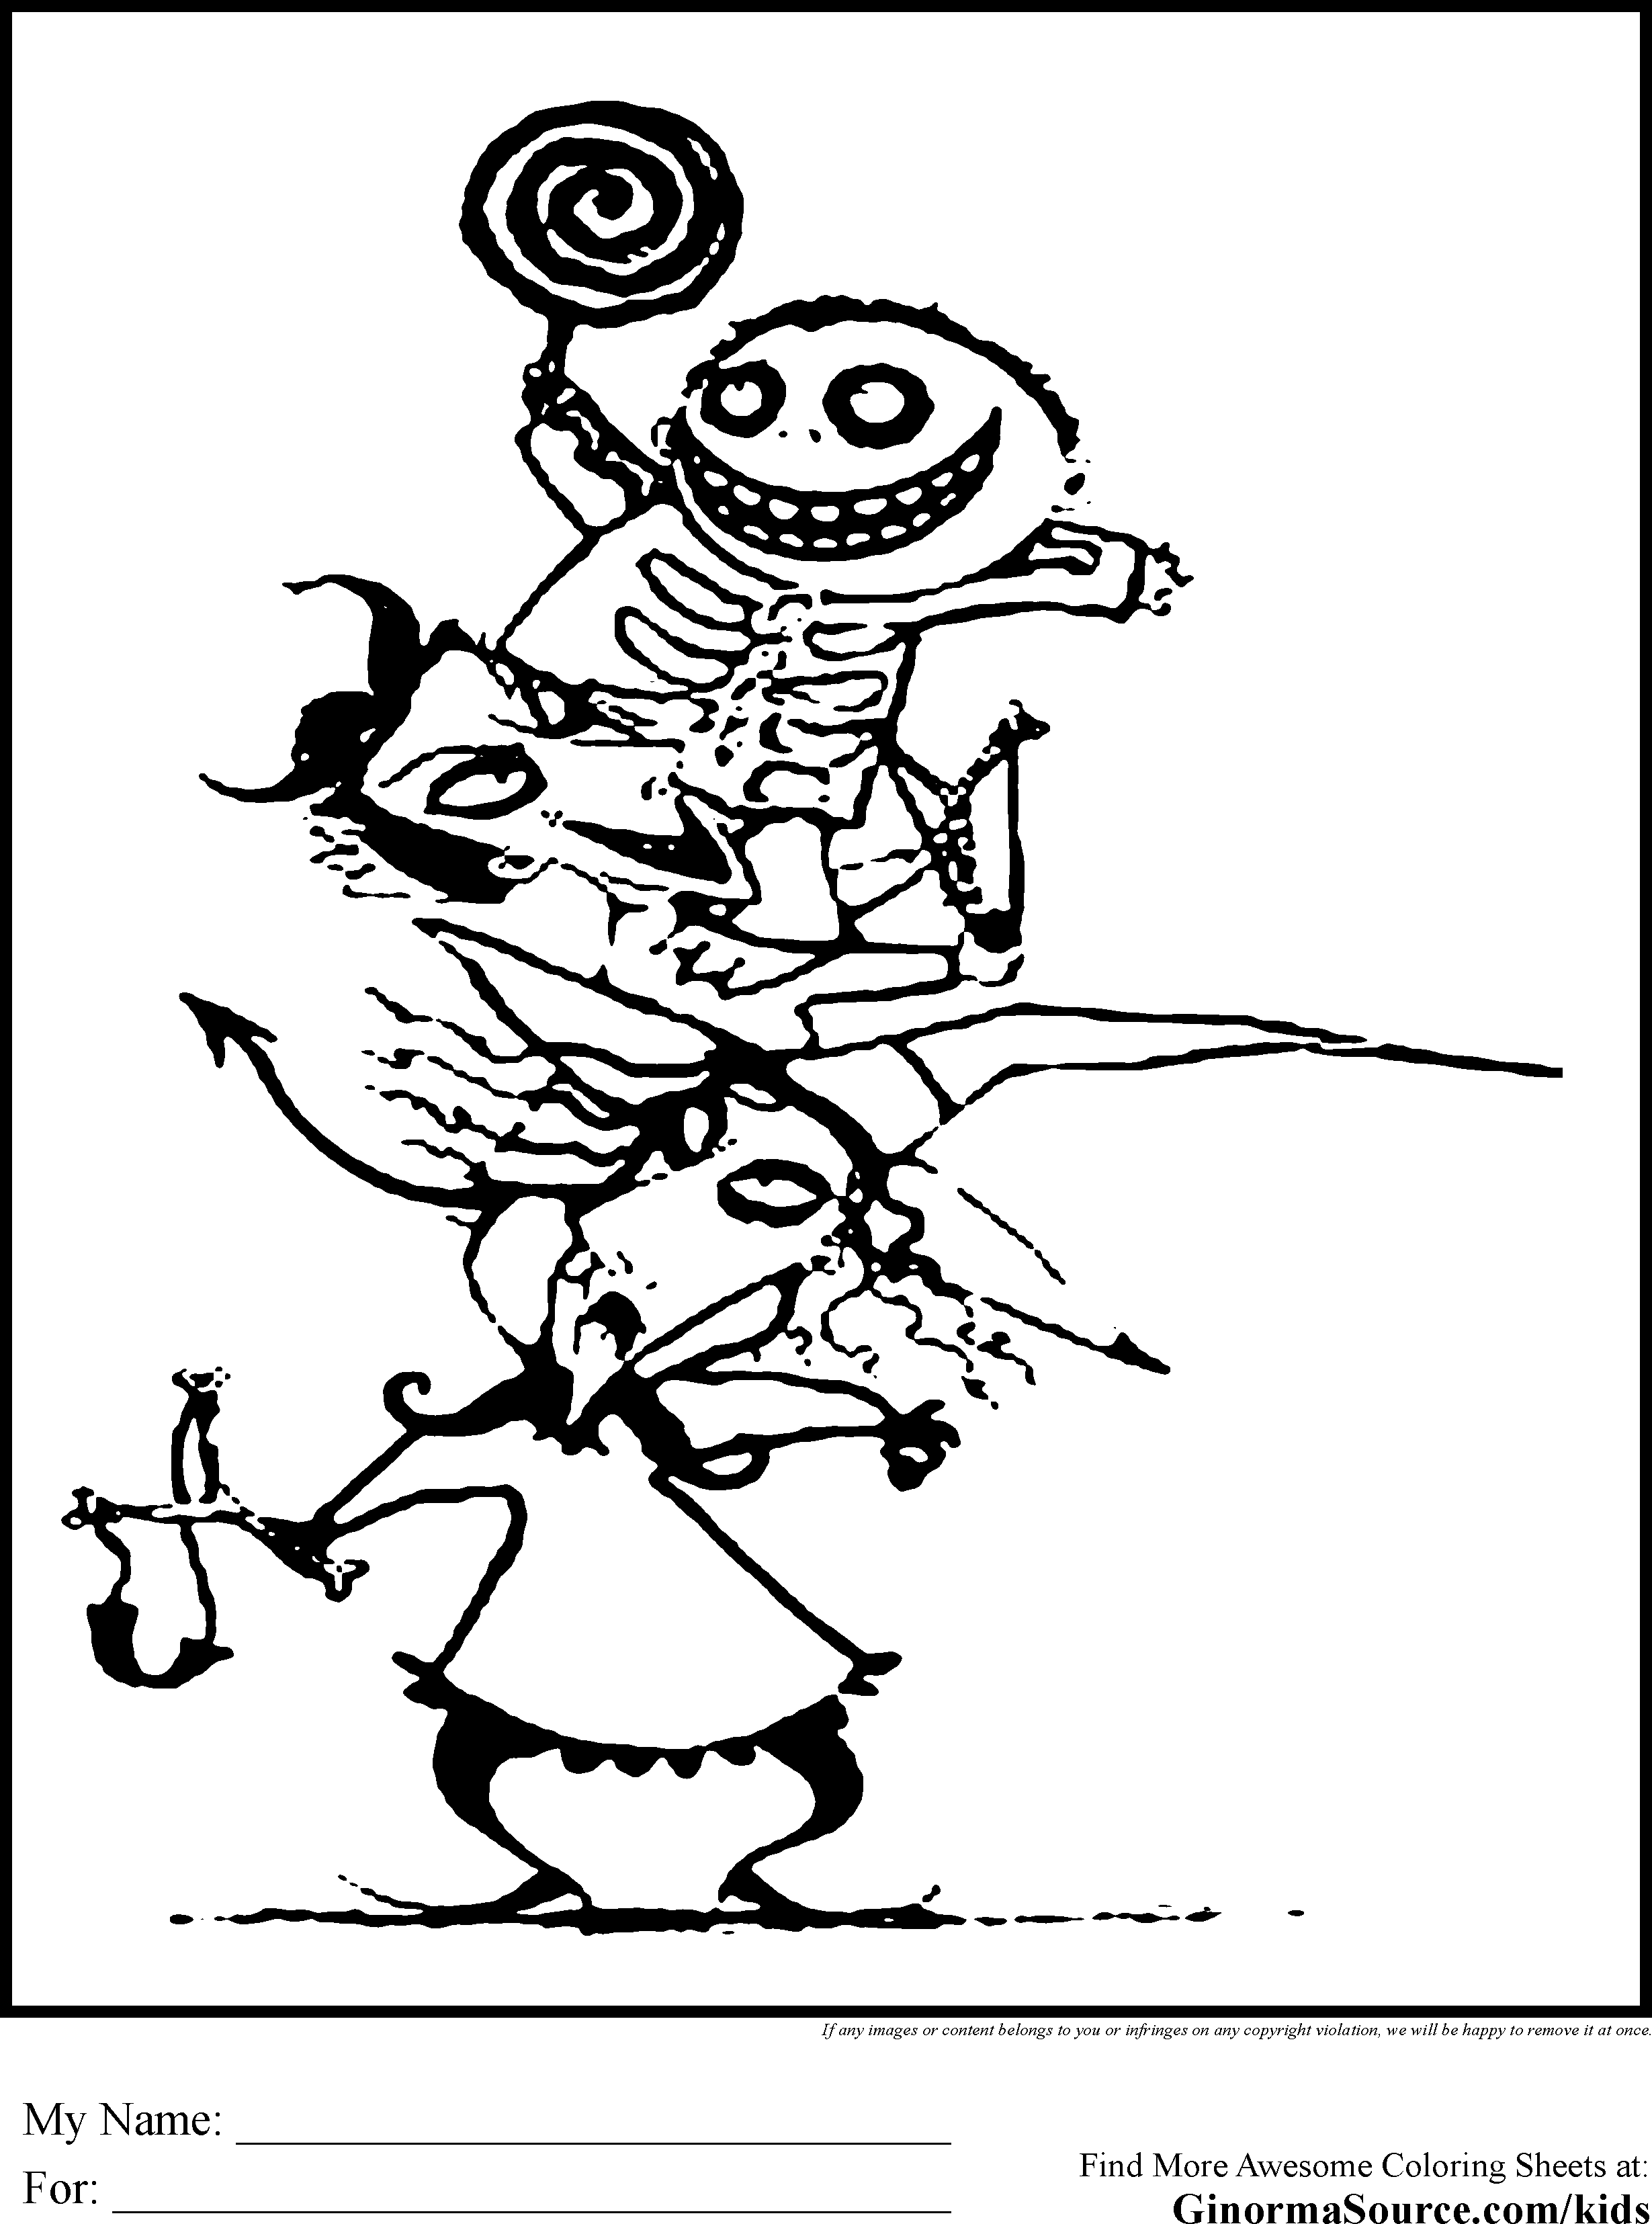 Free printable coloring pages nightmare before christmas - Boogie Man Nightmare Before Christmas Coloring Pages Coloring